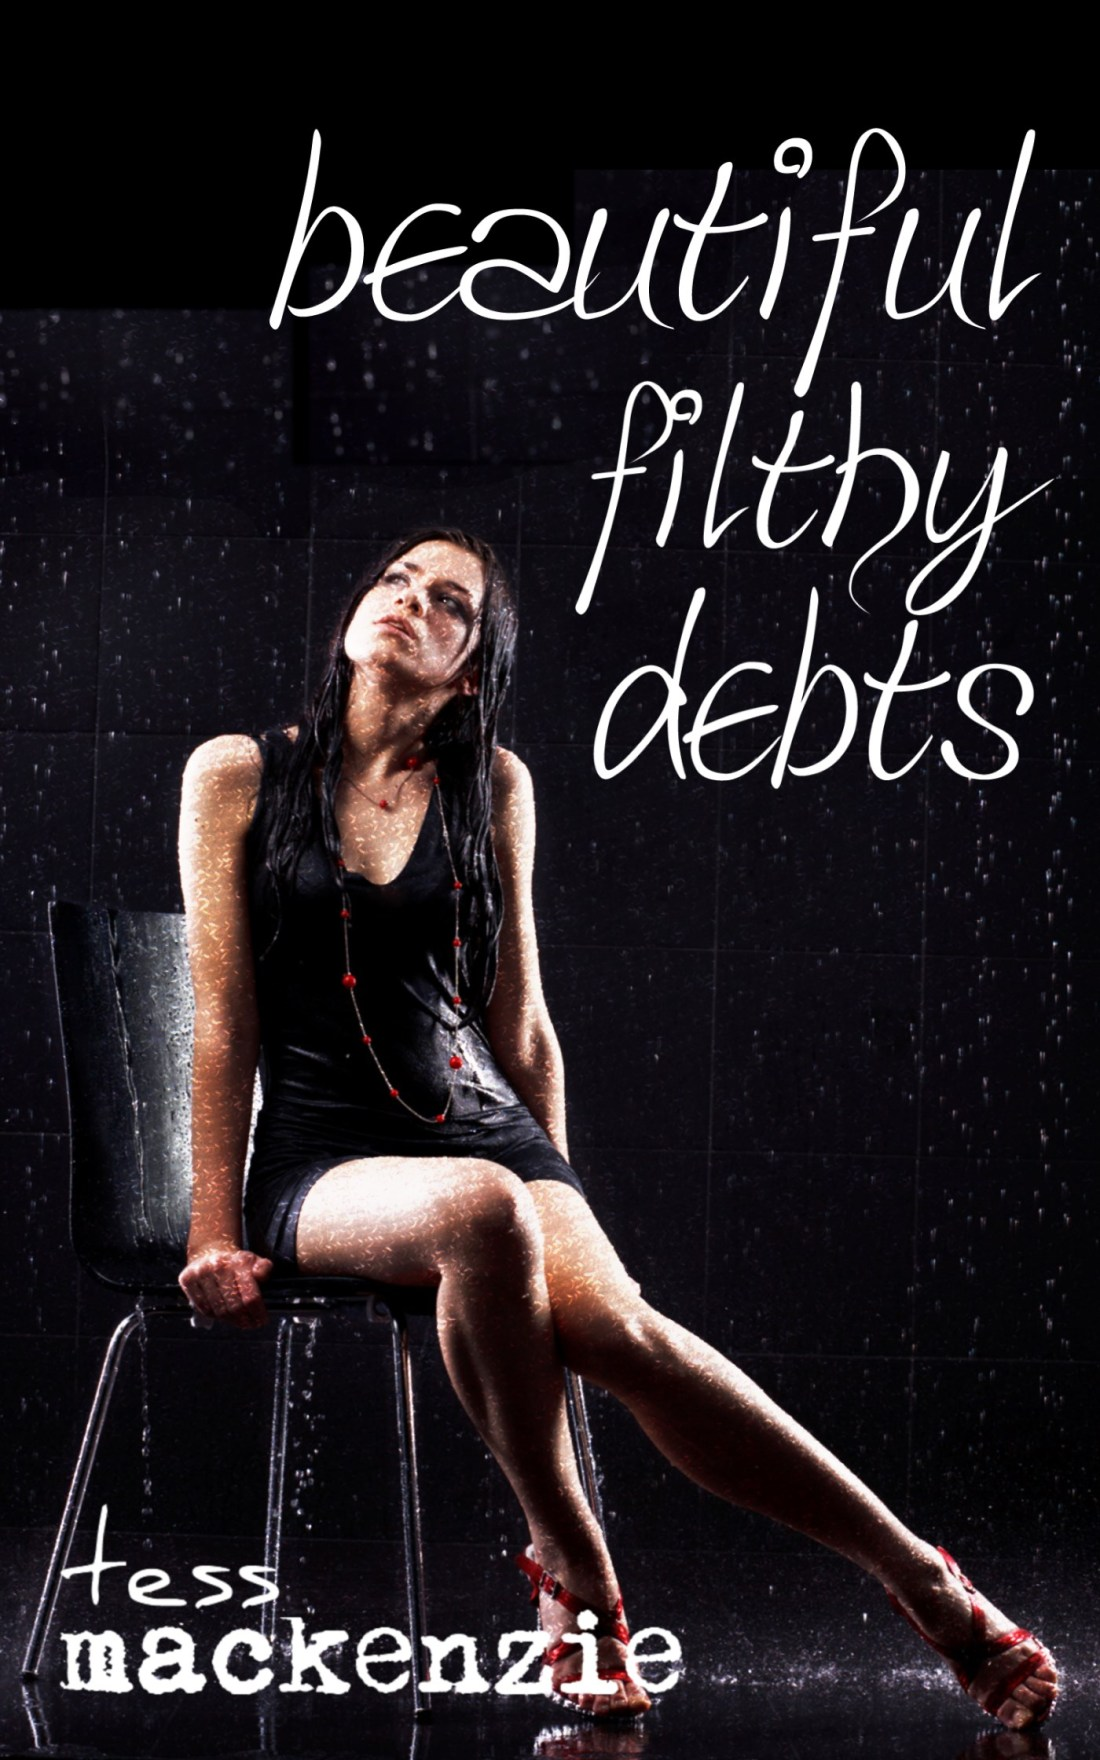 [Beautiful Filthy Debts]